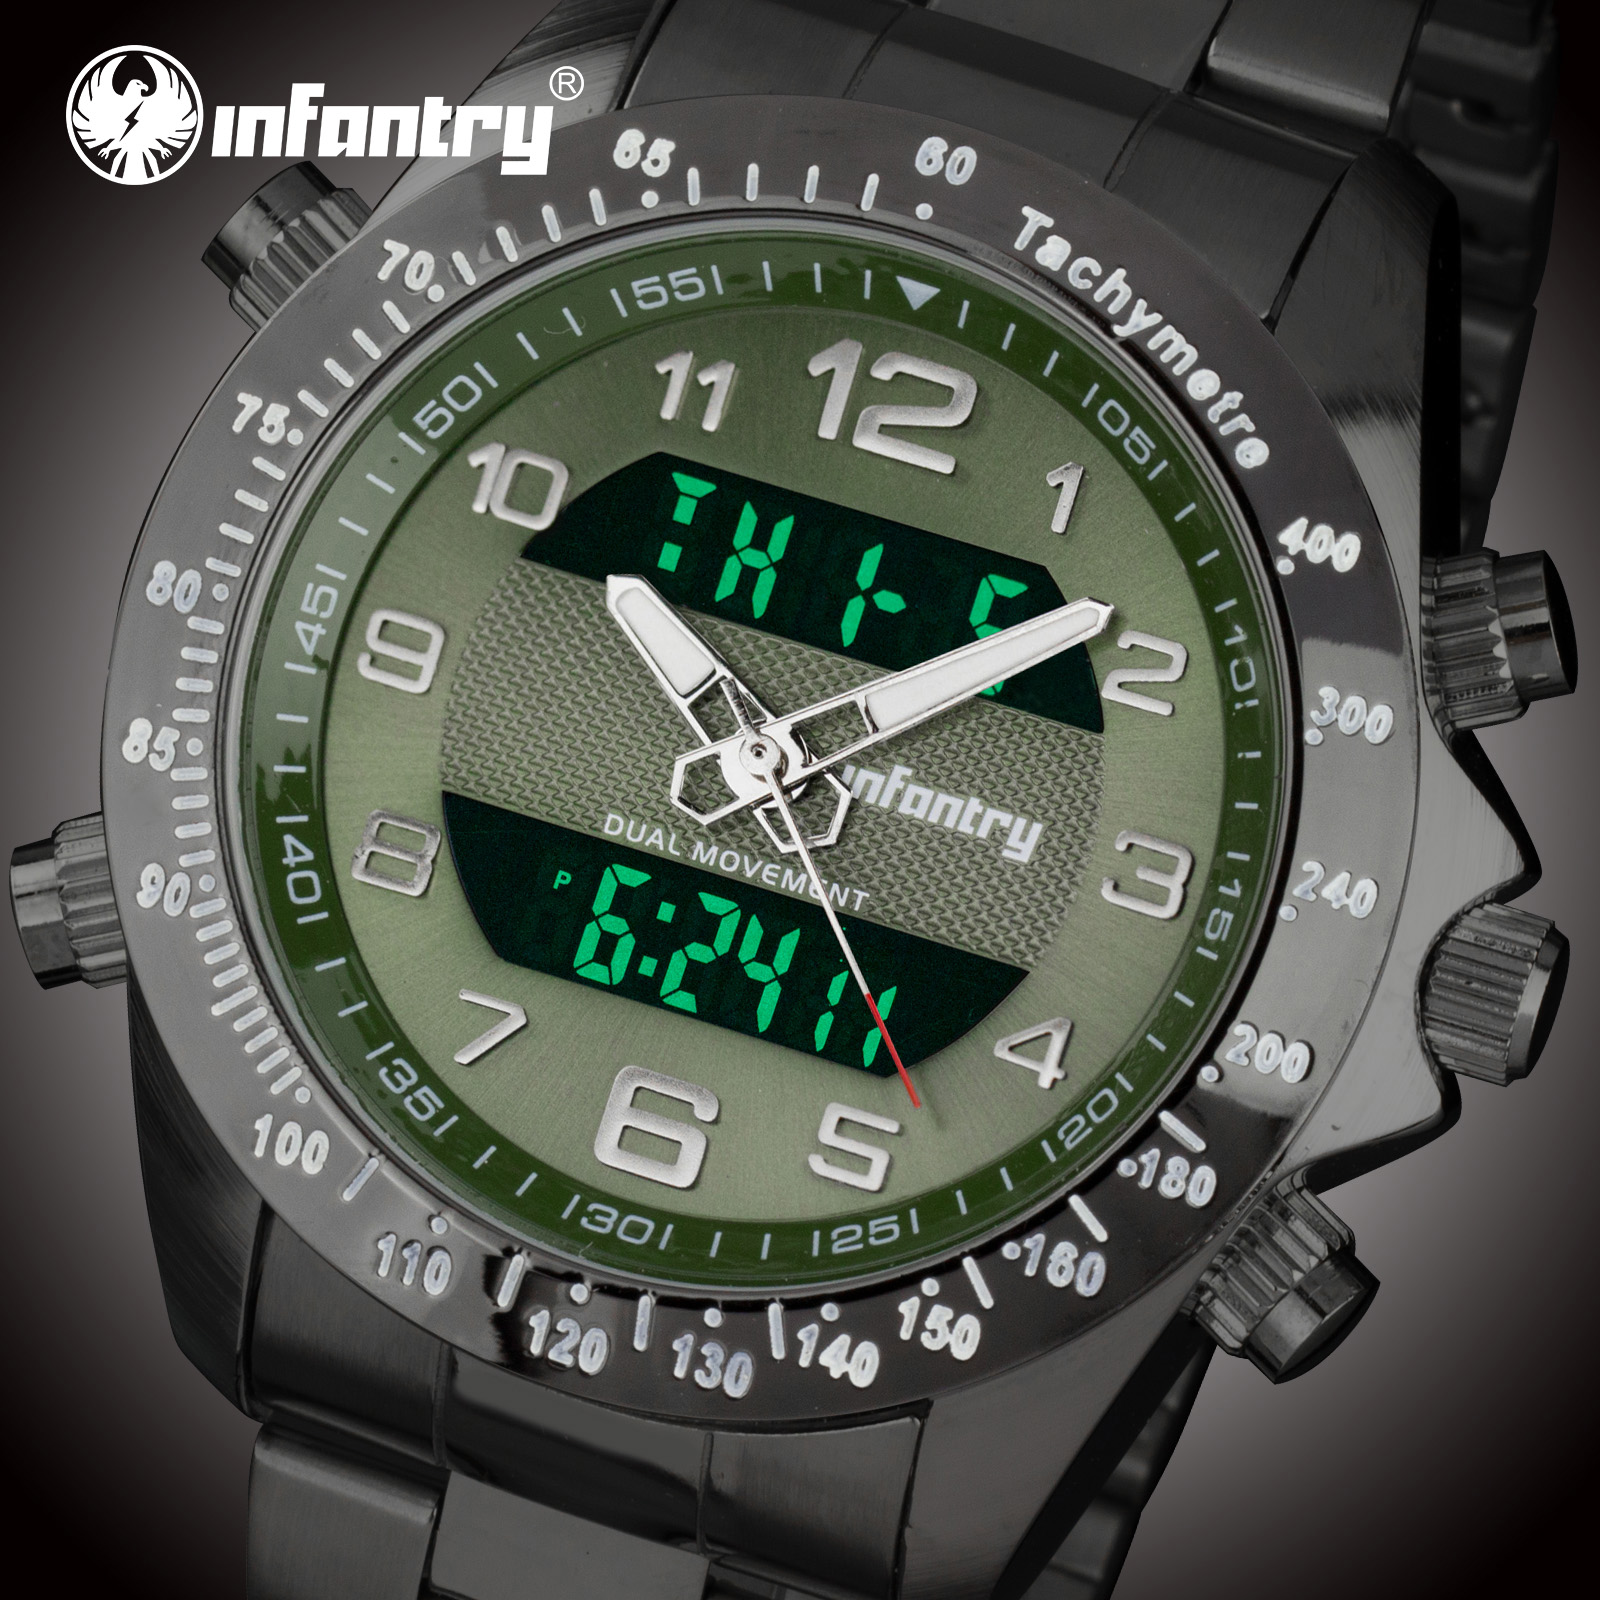 INFANTRY Mens Watches Top Brand Luxury Men Big Sport Army Watches for Men Black Relogio Masculino Analog Digital Military Watch Quartz Watches    - title=